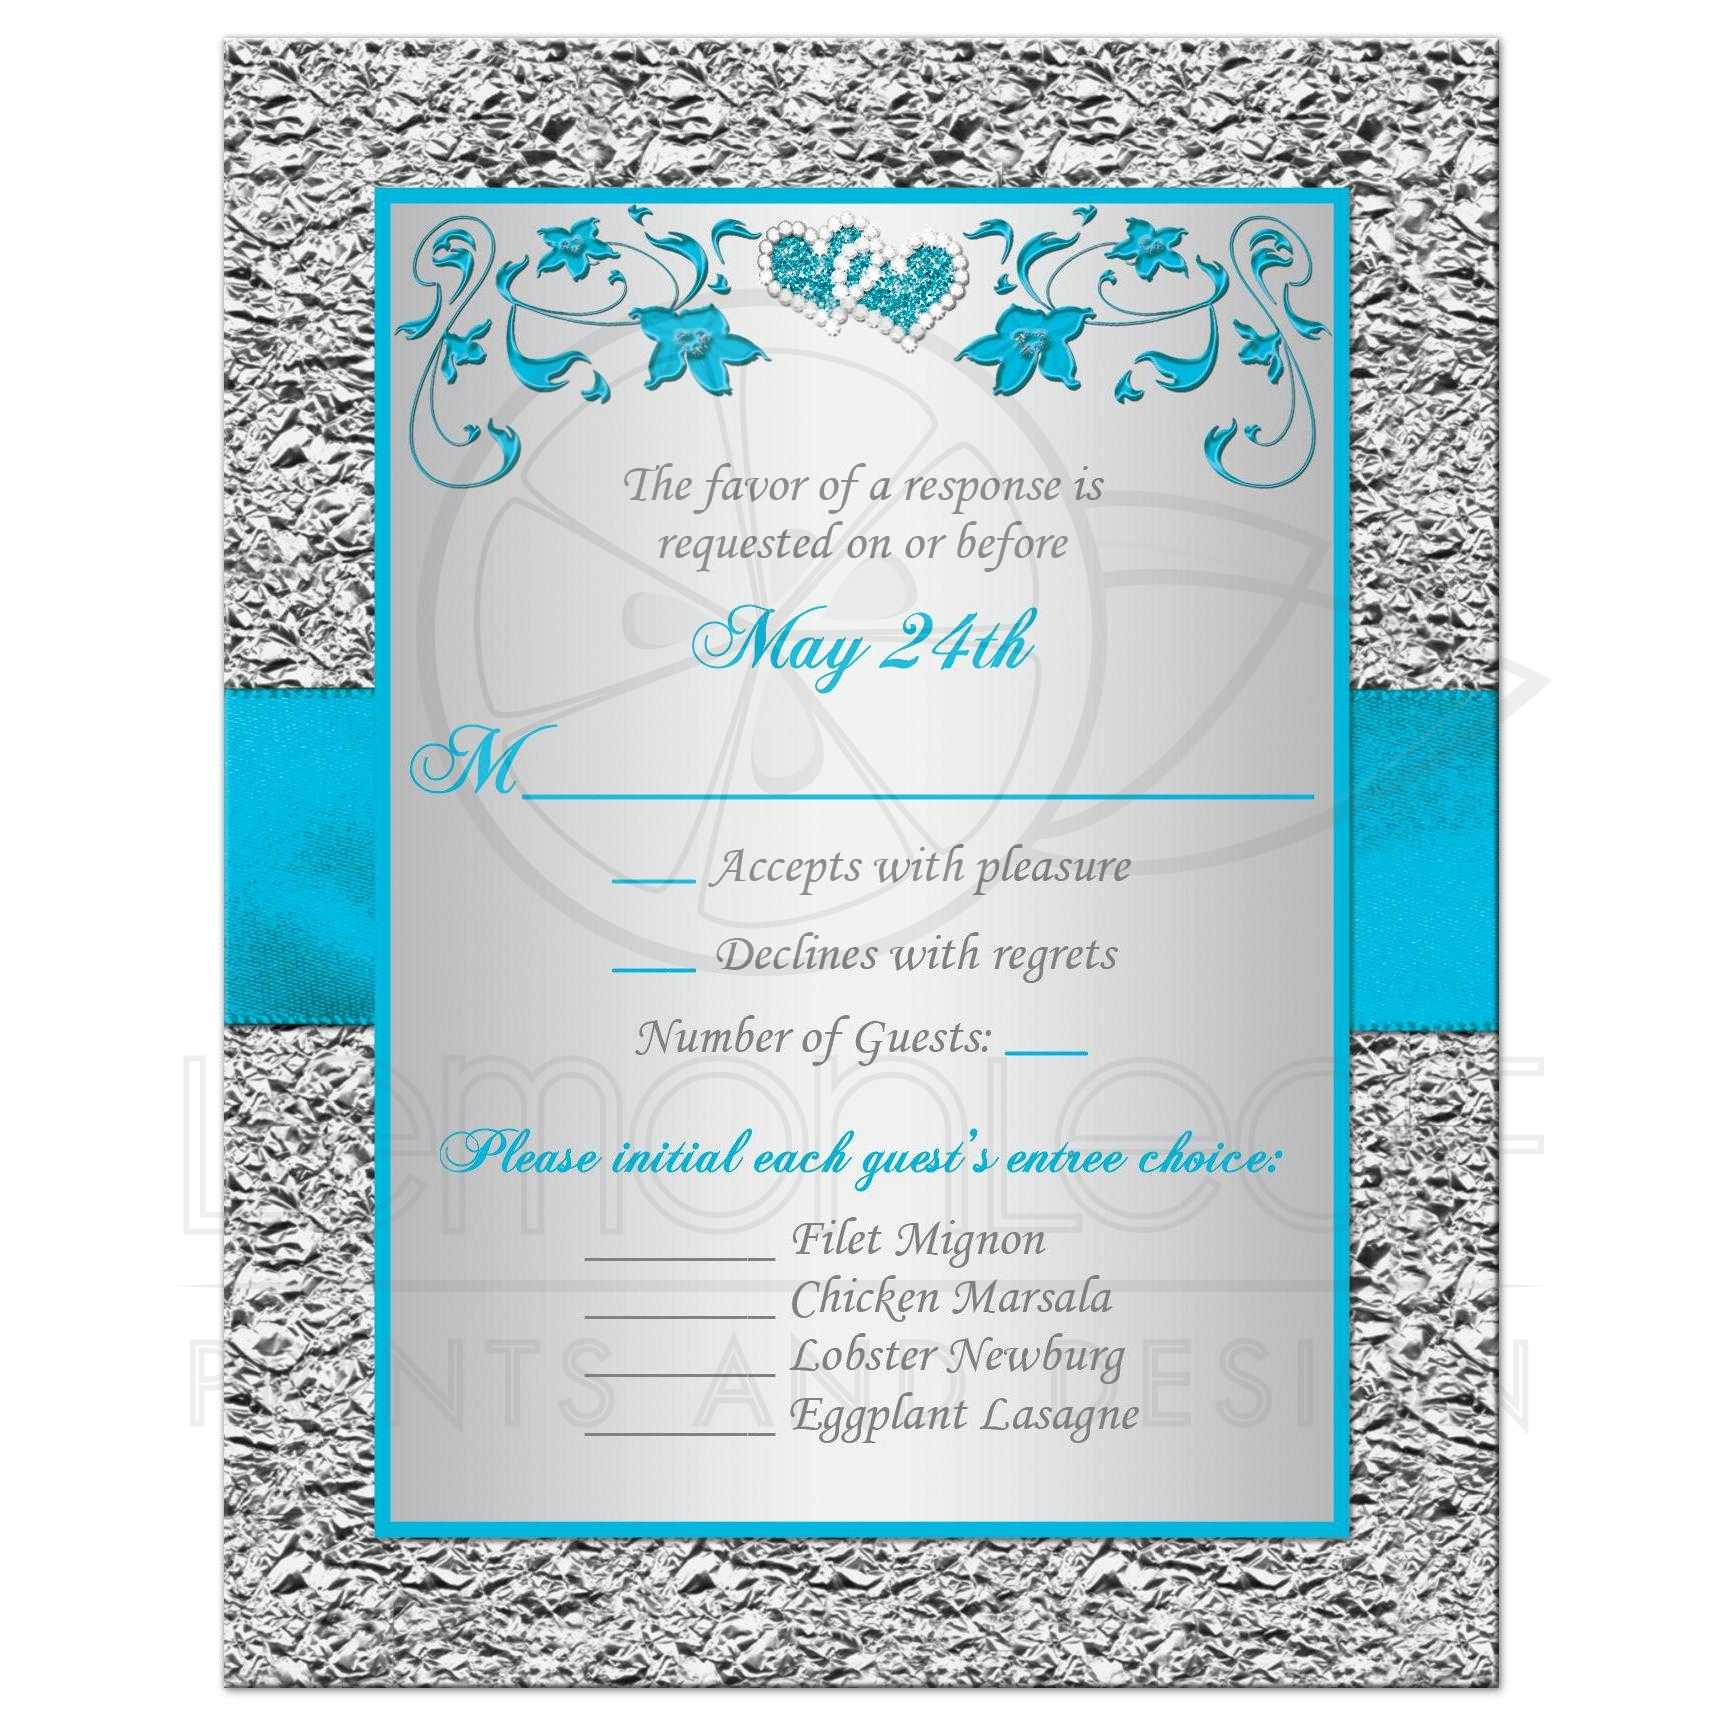 And Turquoise Blue Silver Gray Floral Wedding RSVP Cards With Teal Ribbon Bow